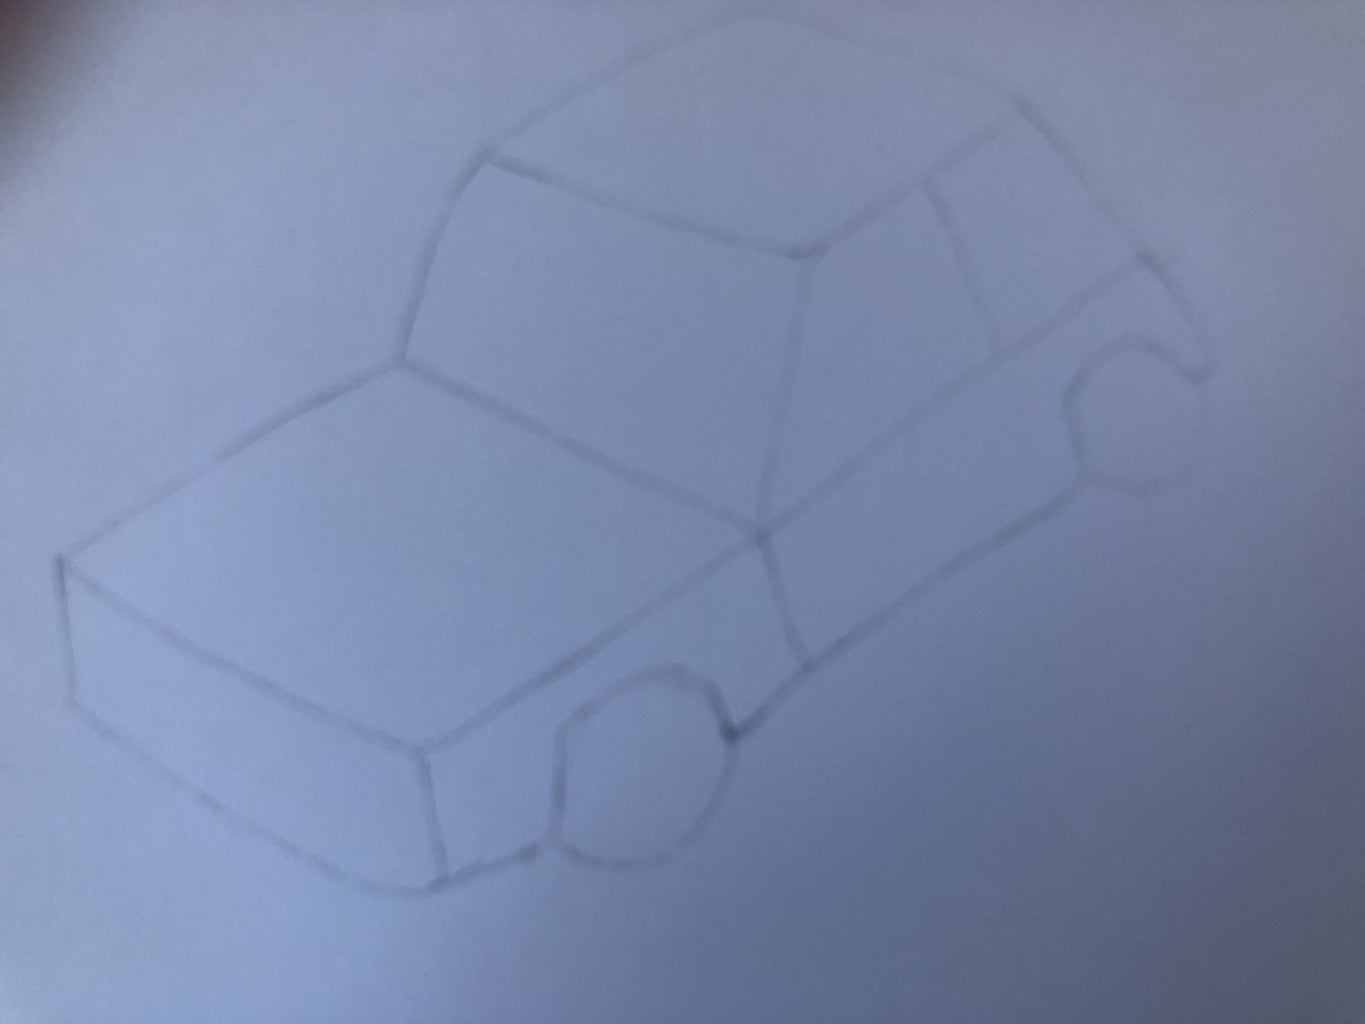 Drawing the Rest of the Side and the Wheels